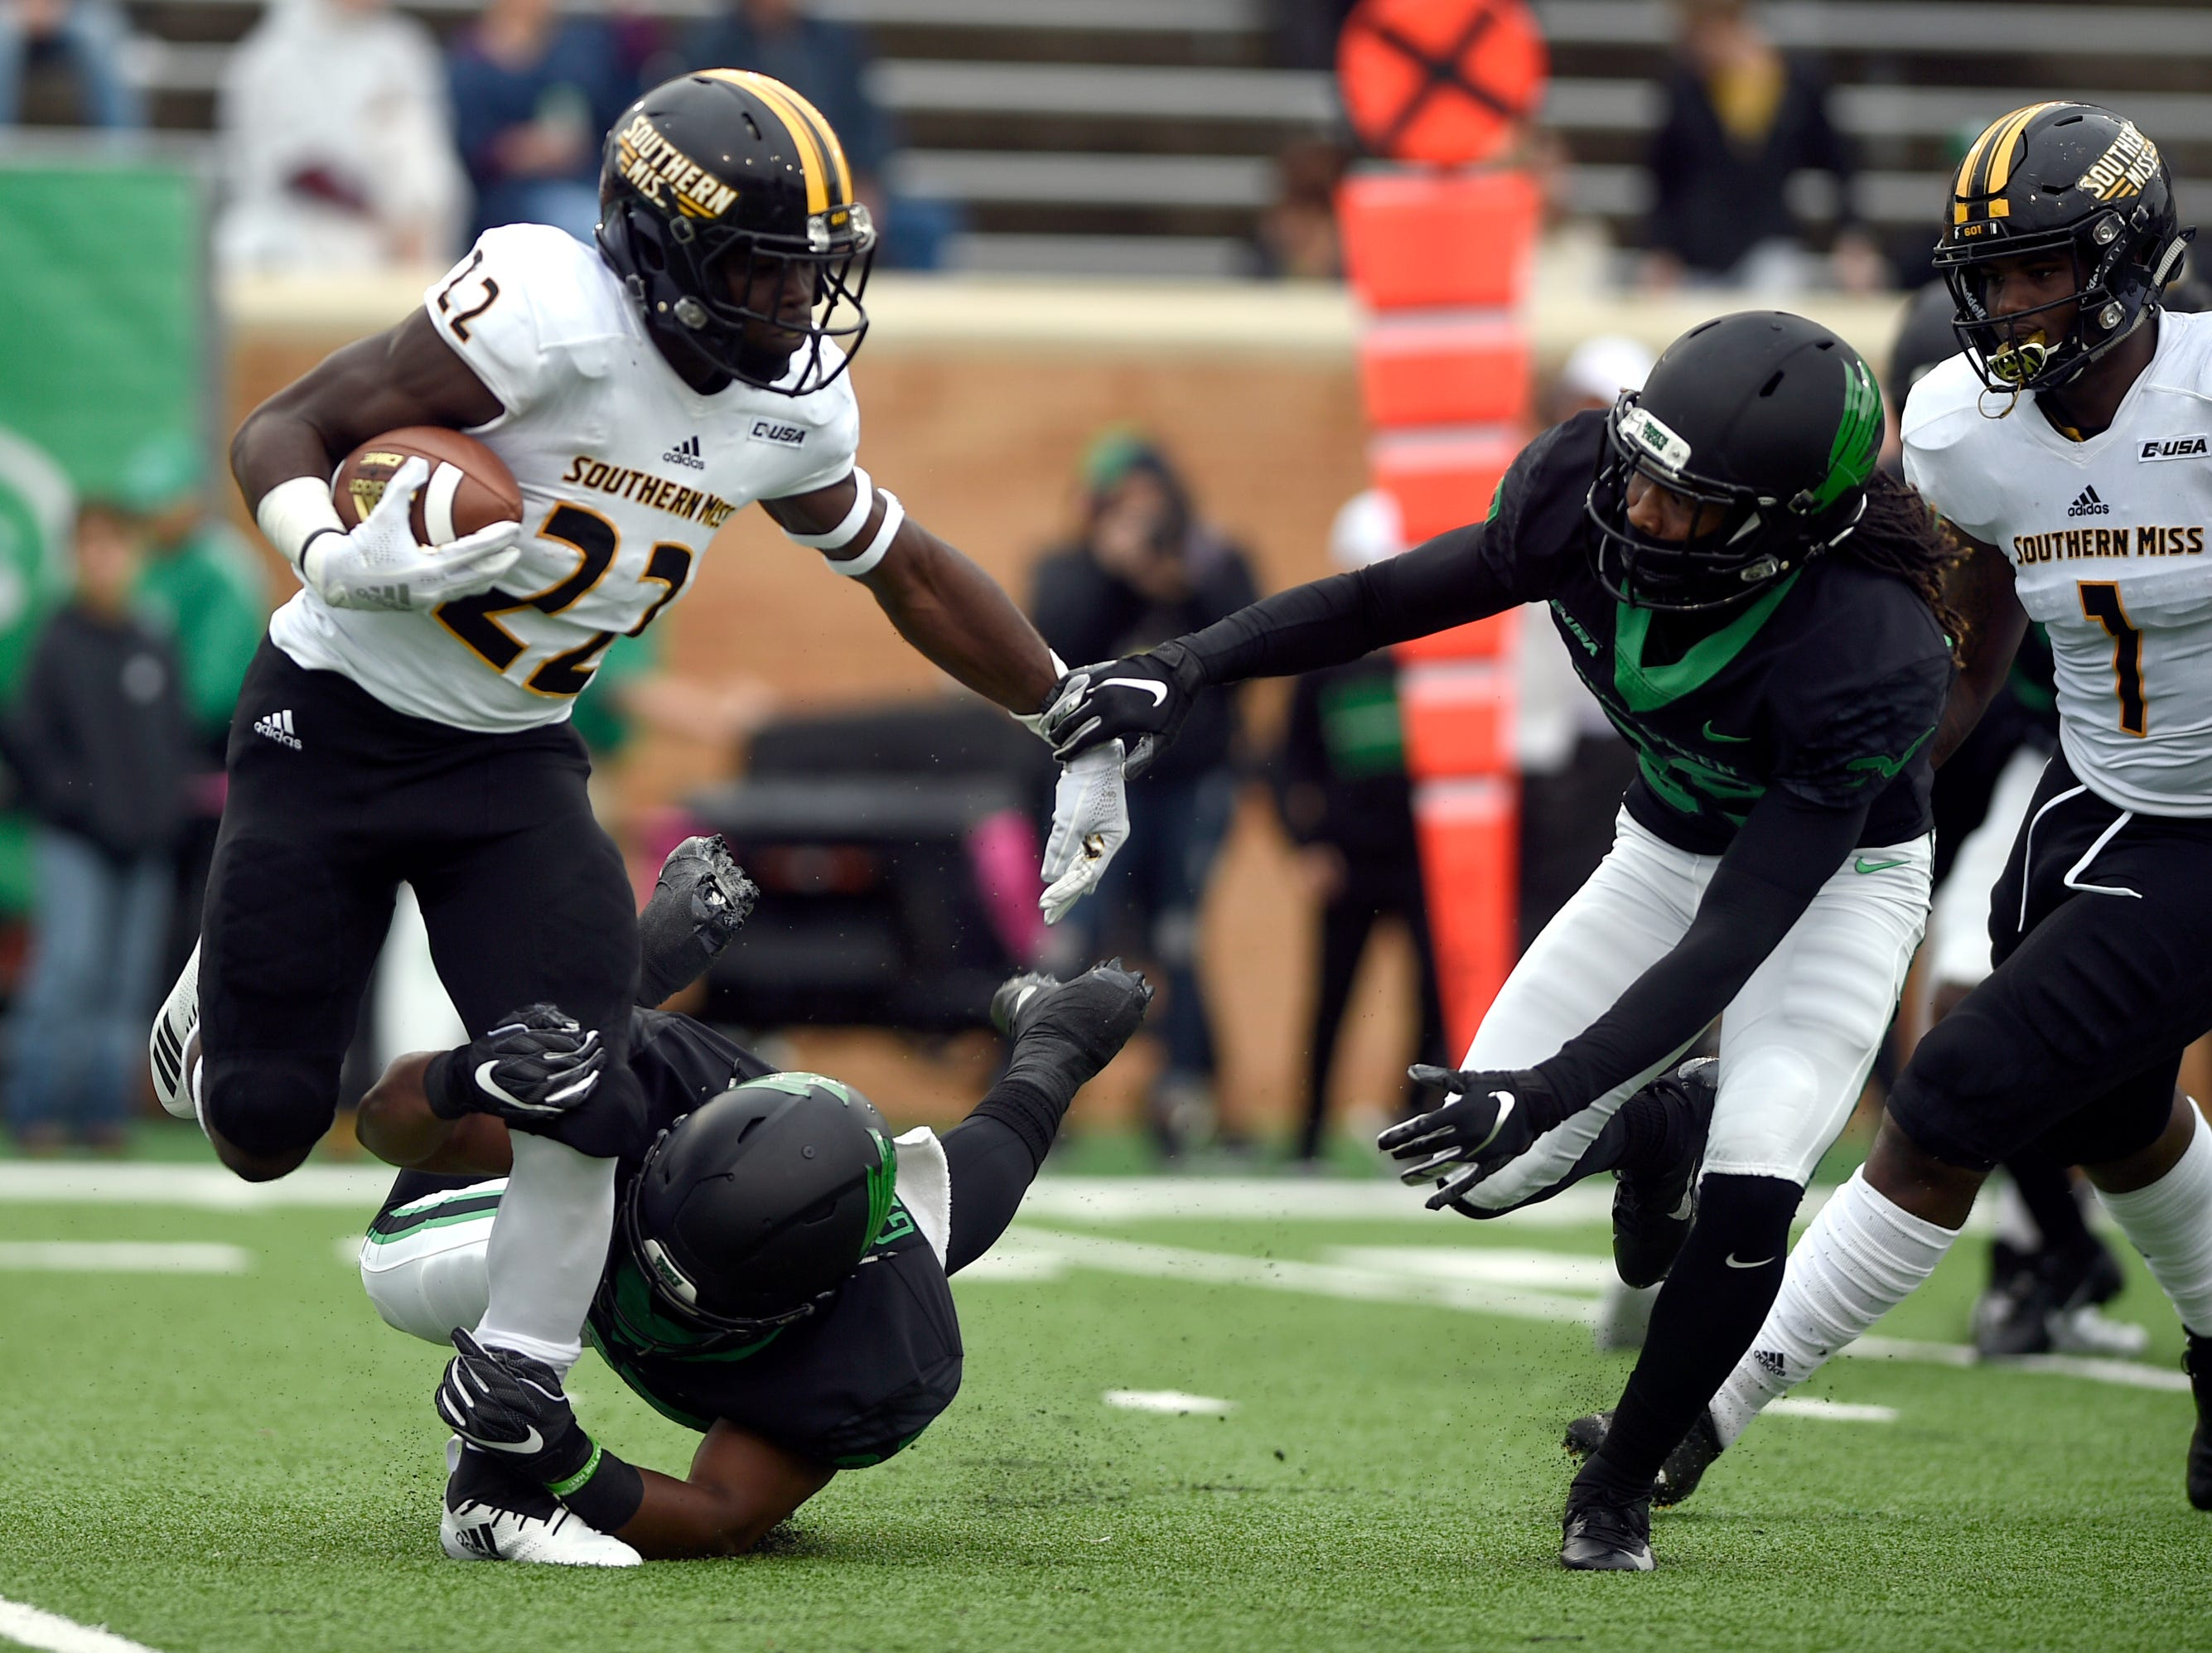 North Texas defensive back Jameel Moore (39) dives in to tackle Southern Miss running back Trivensky Mosely (22) during an NCAA college football game at Apogee Stadium in Denton, Texas on Saturday, Oct. 13, 2018.